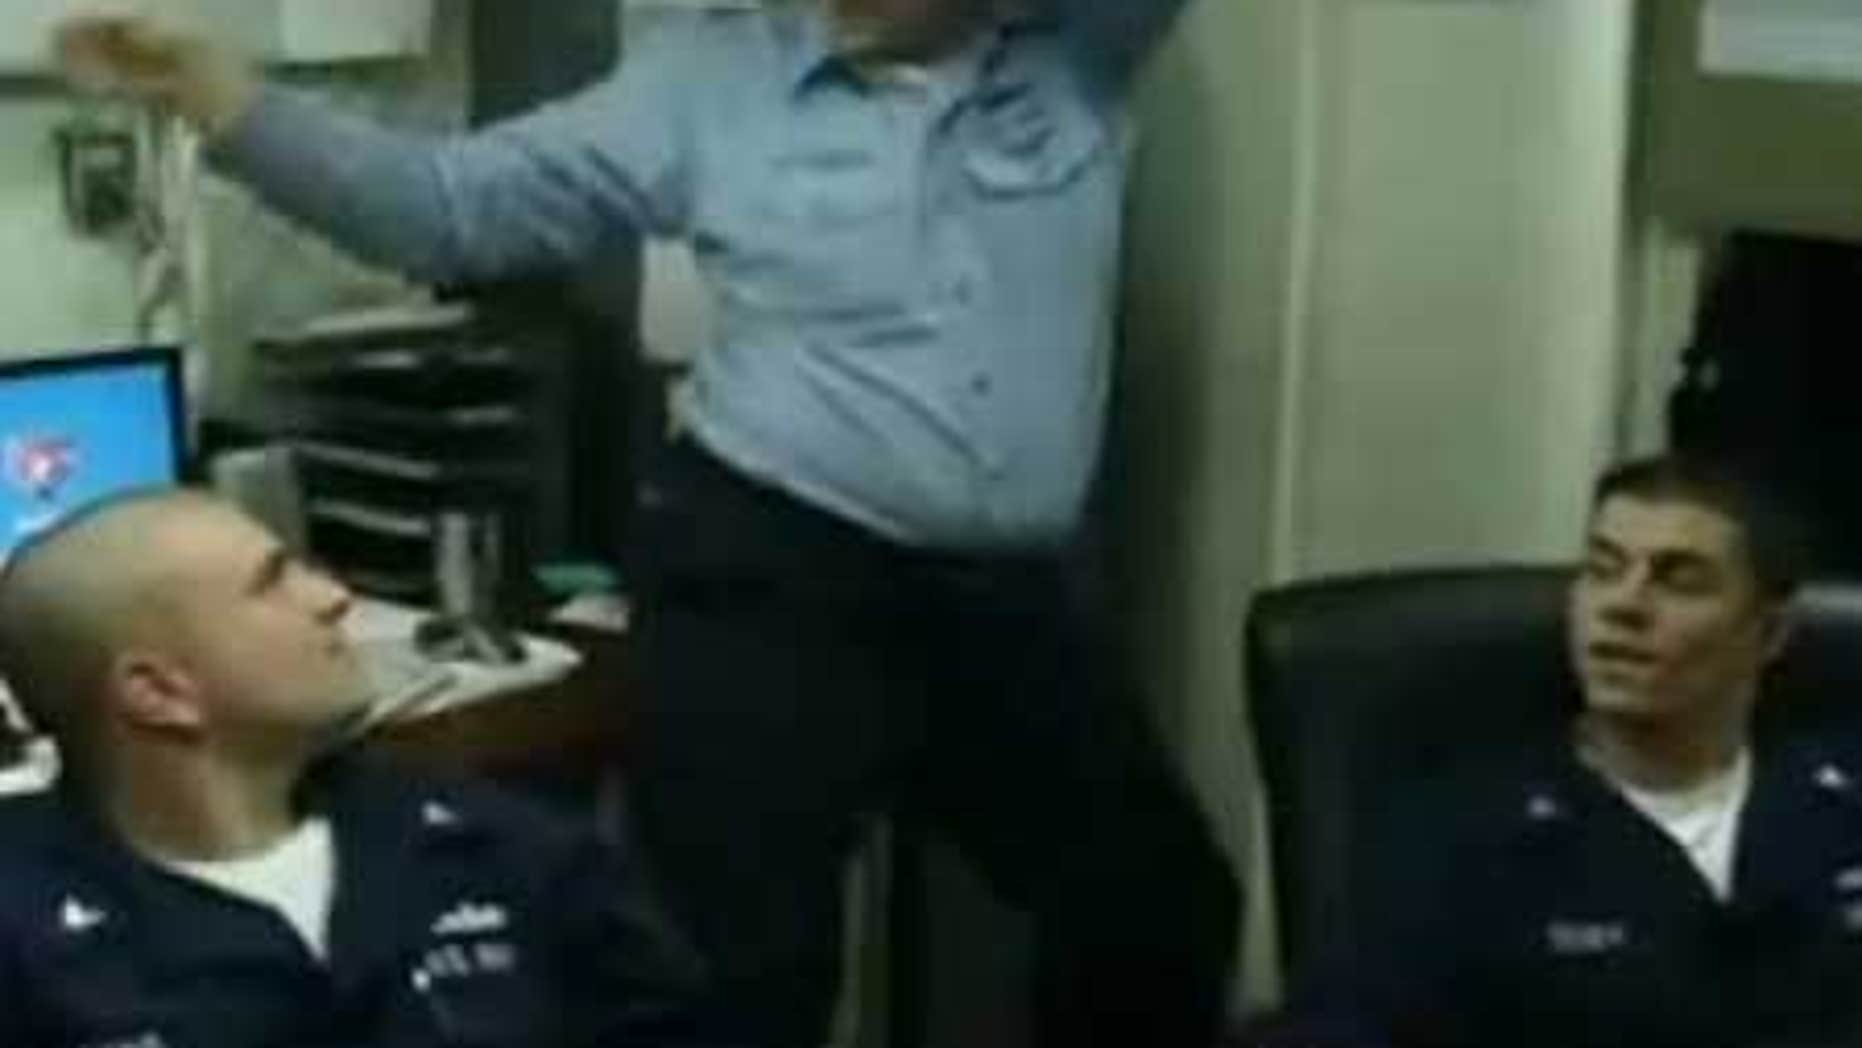 An unidentified Navy sailor, flanked by two others, dances in a YouTube video filmed by murder-suicide victim Michael Joseph Missimer.